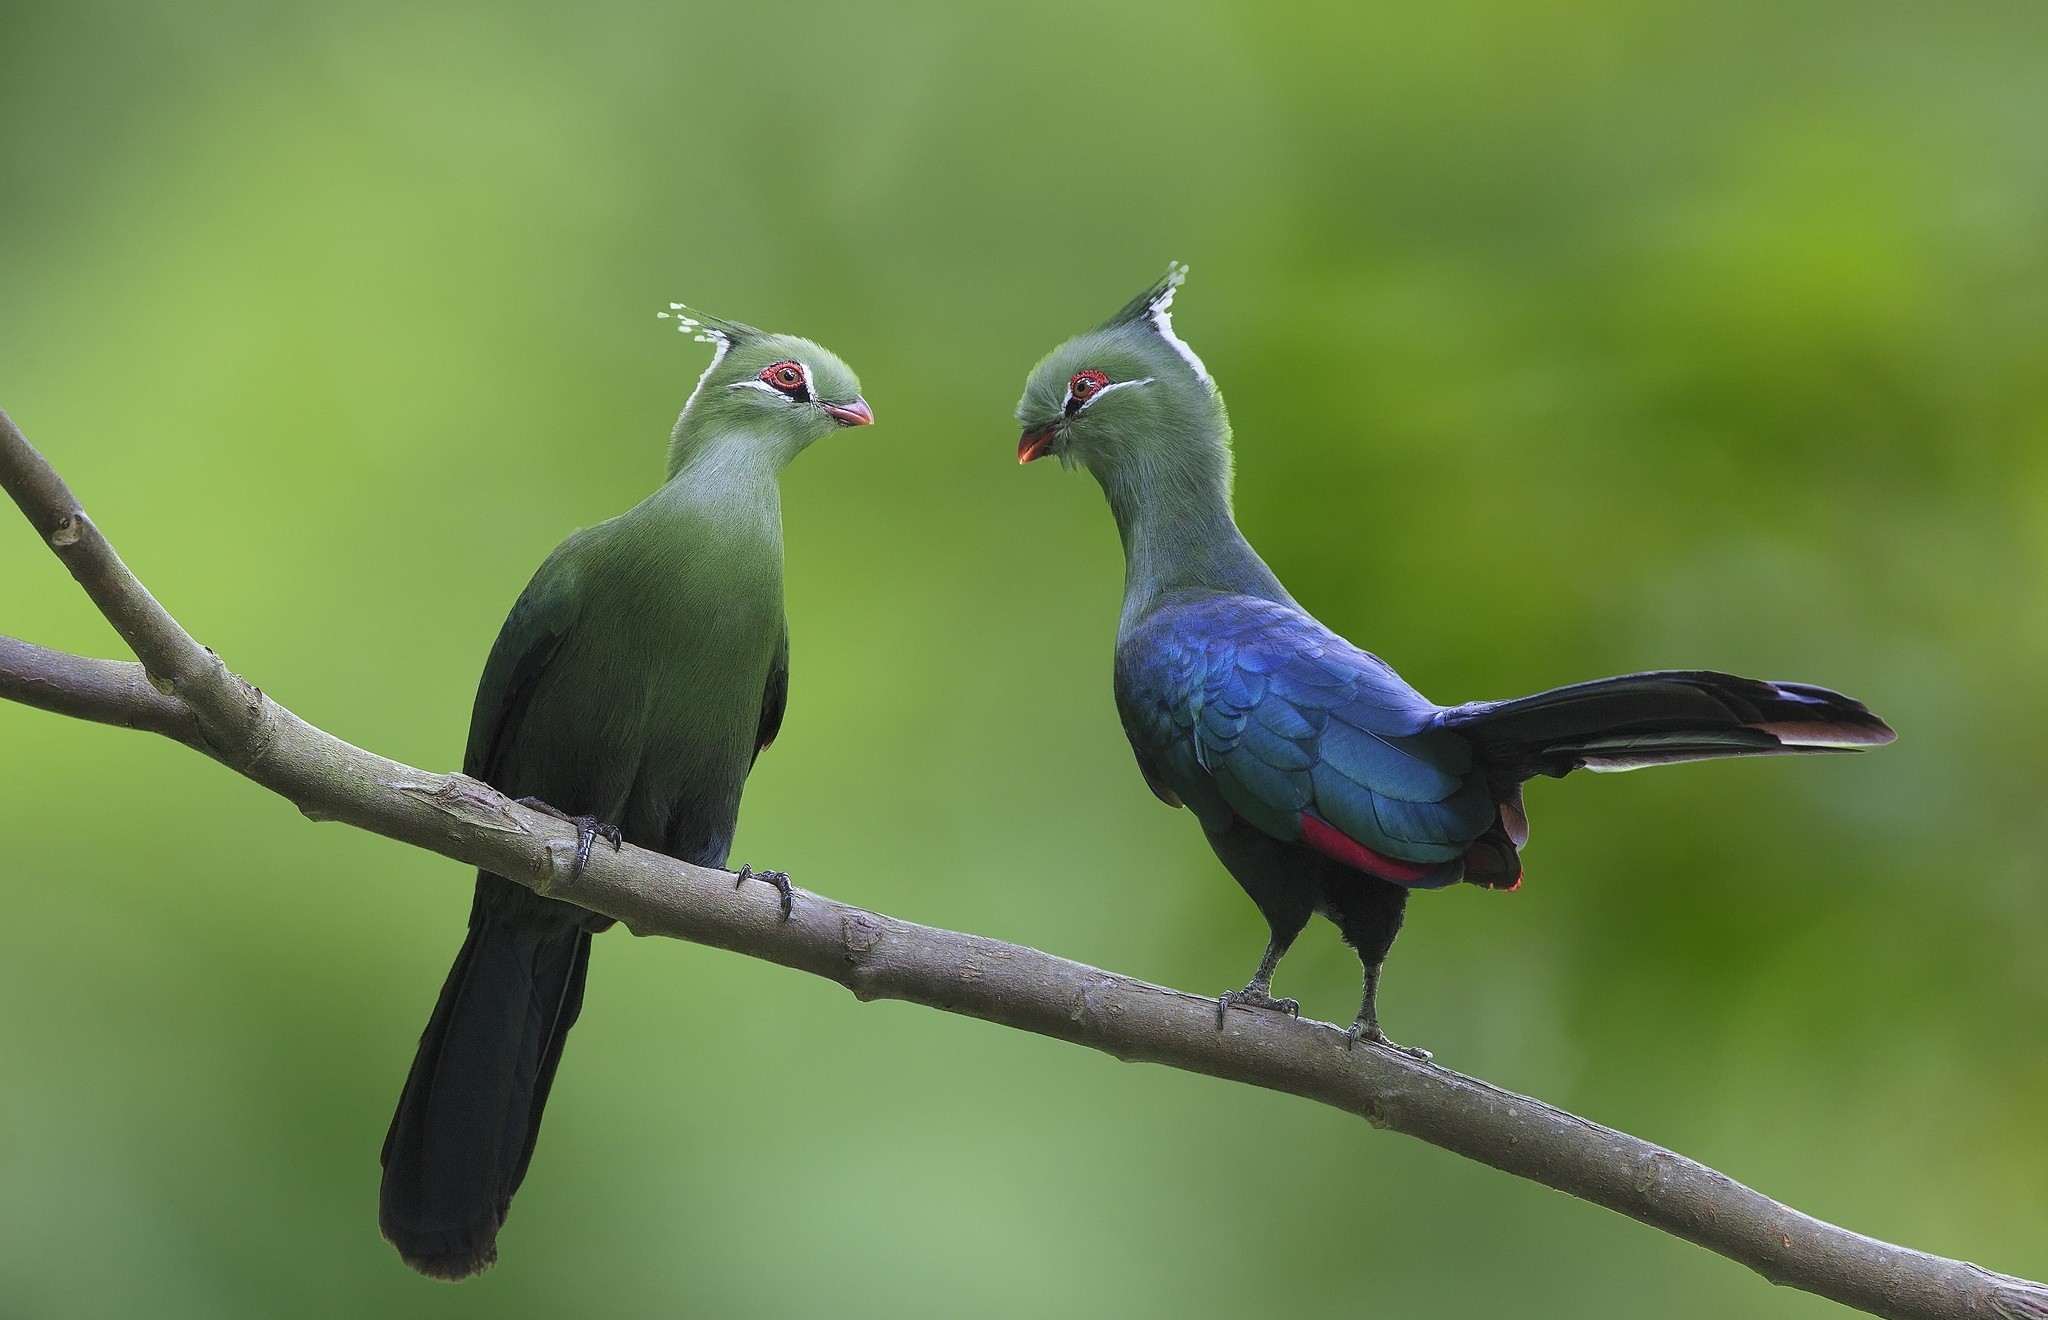 Turaco Couple On Branch Hd Wallpaper Background Image 2048x1320 Id 541499 Wallpaper Abyss